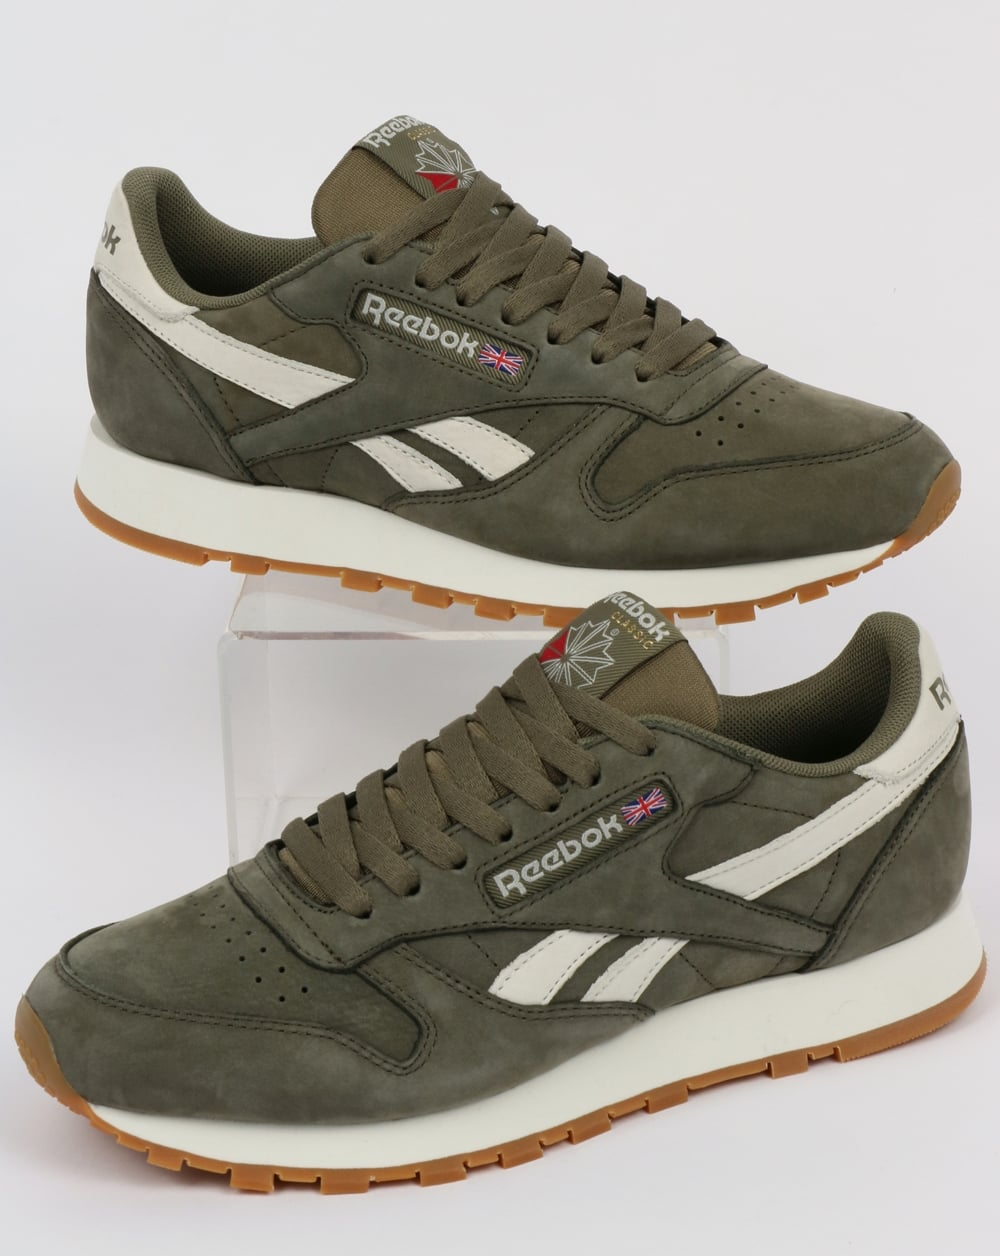 7107f9098ca Reebok Reebok Classic Leather TL Trainers Washed Olive Chalk